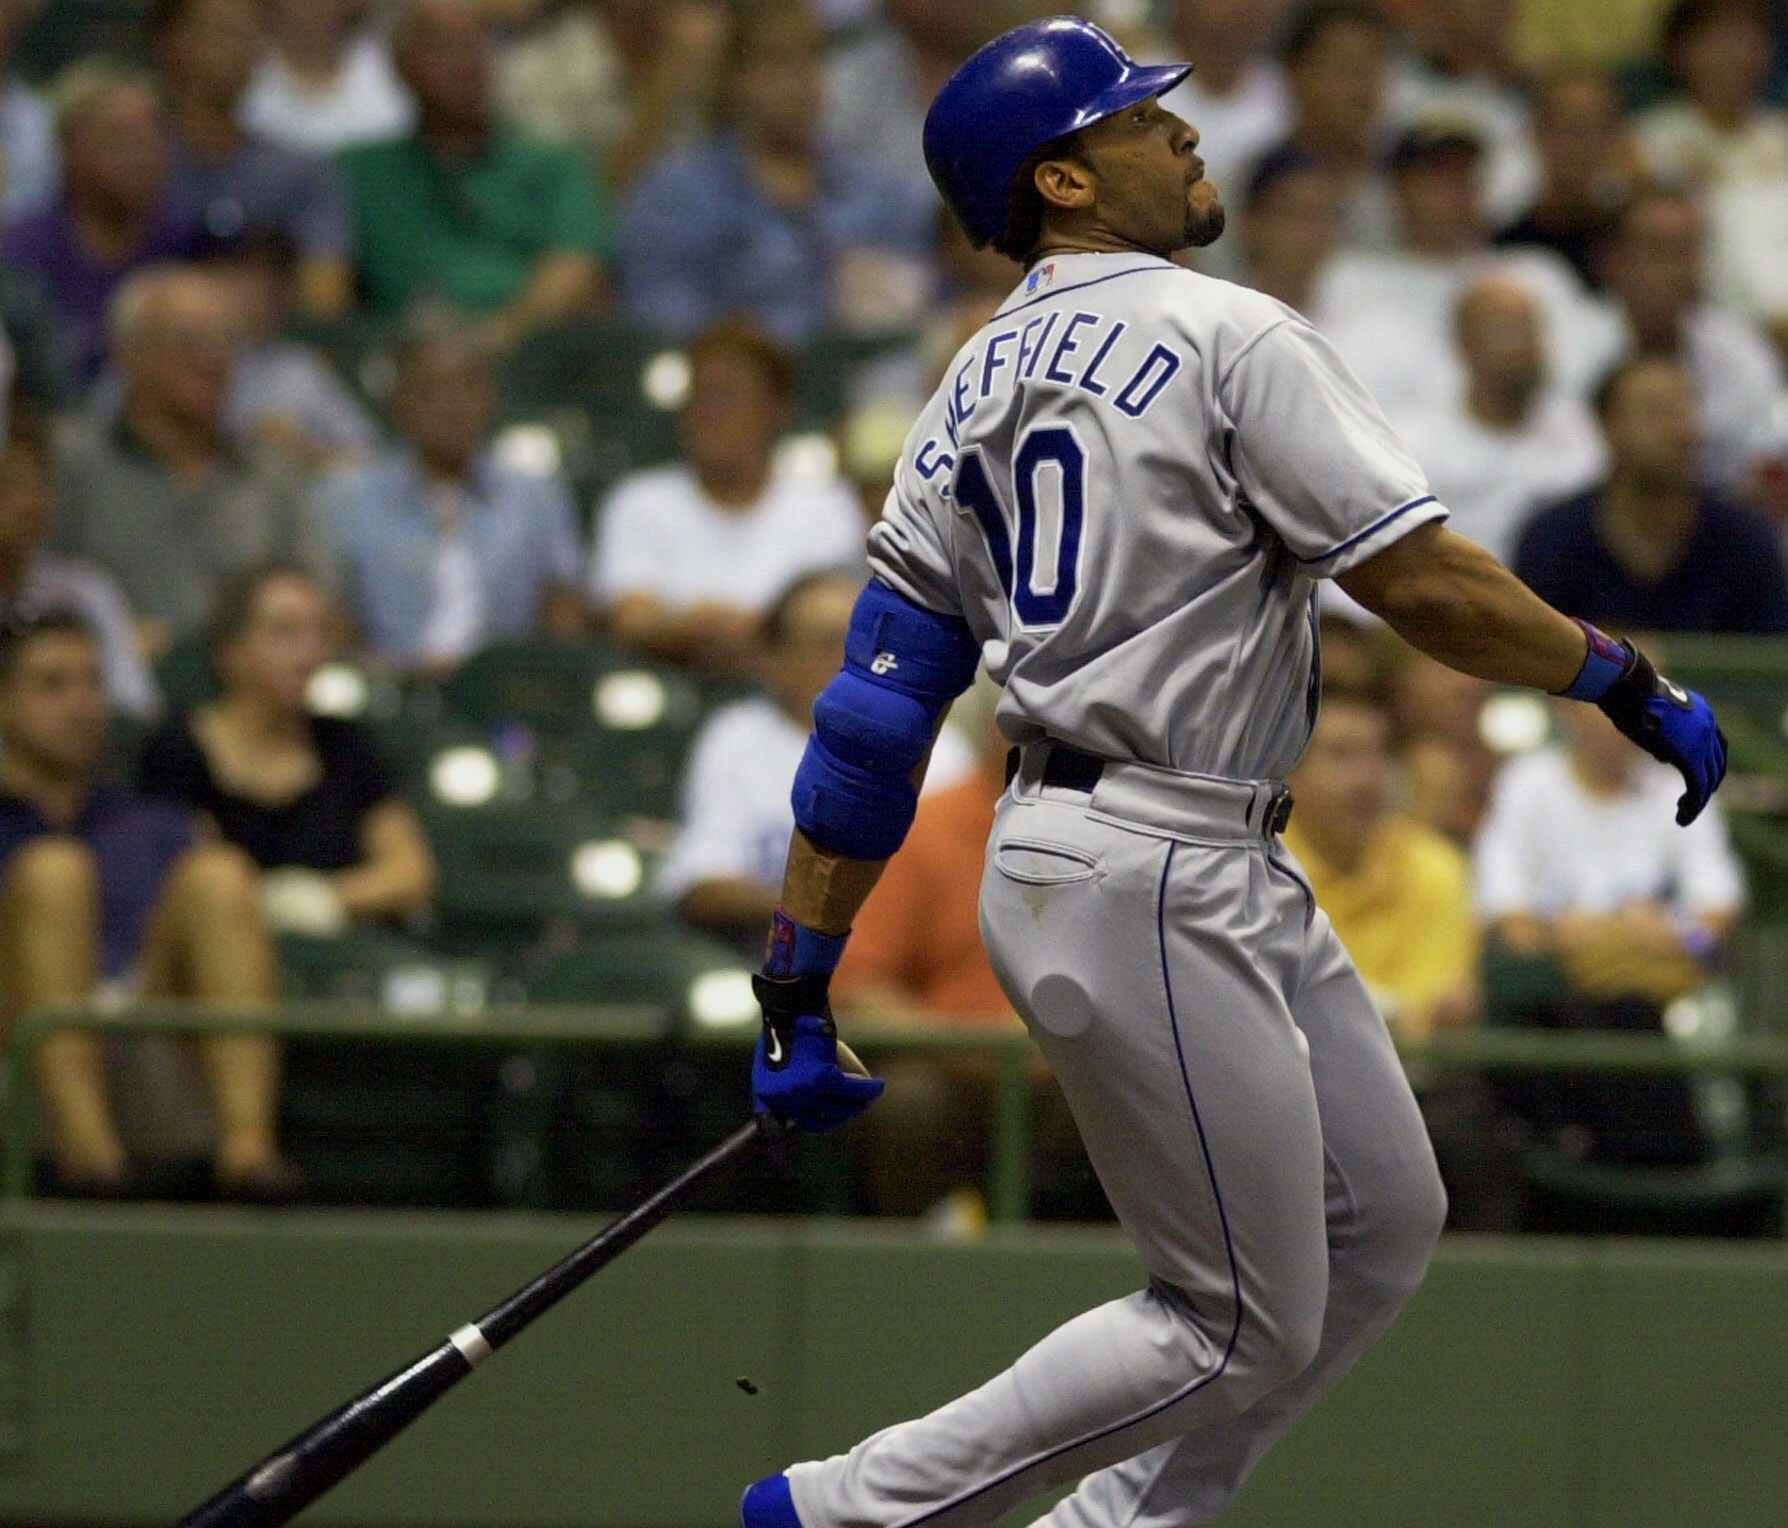 Gary Sheffield hit 509 home runs and had six top 10 finishes in MVP voting.